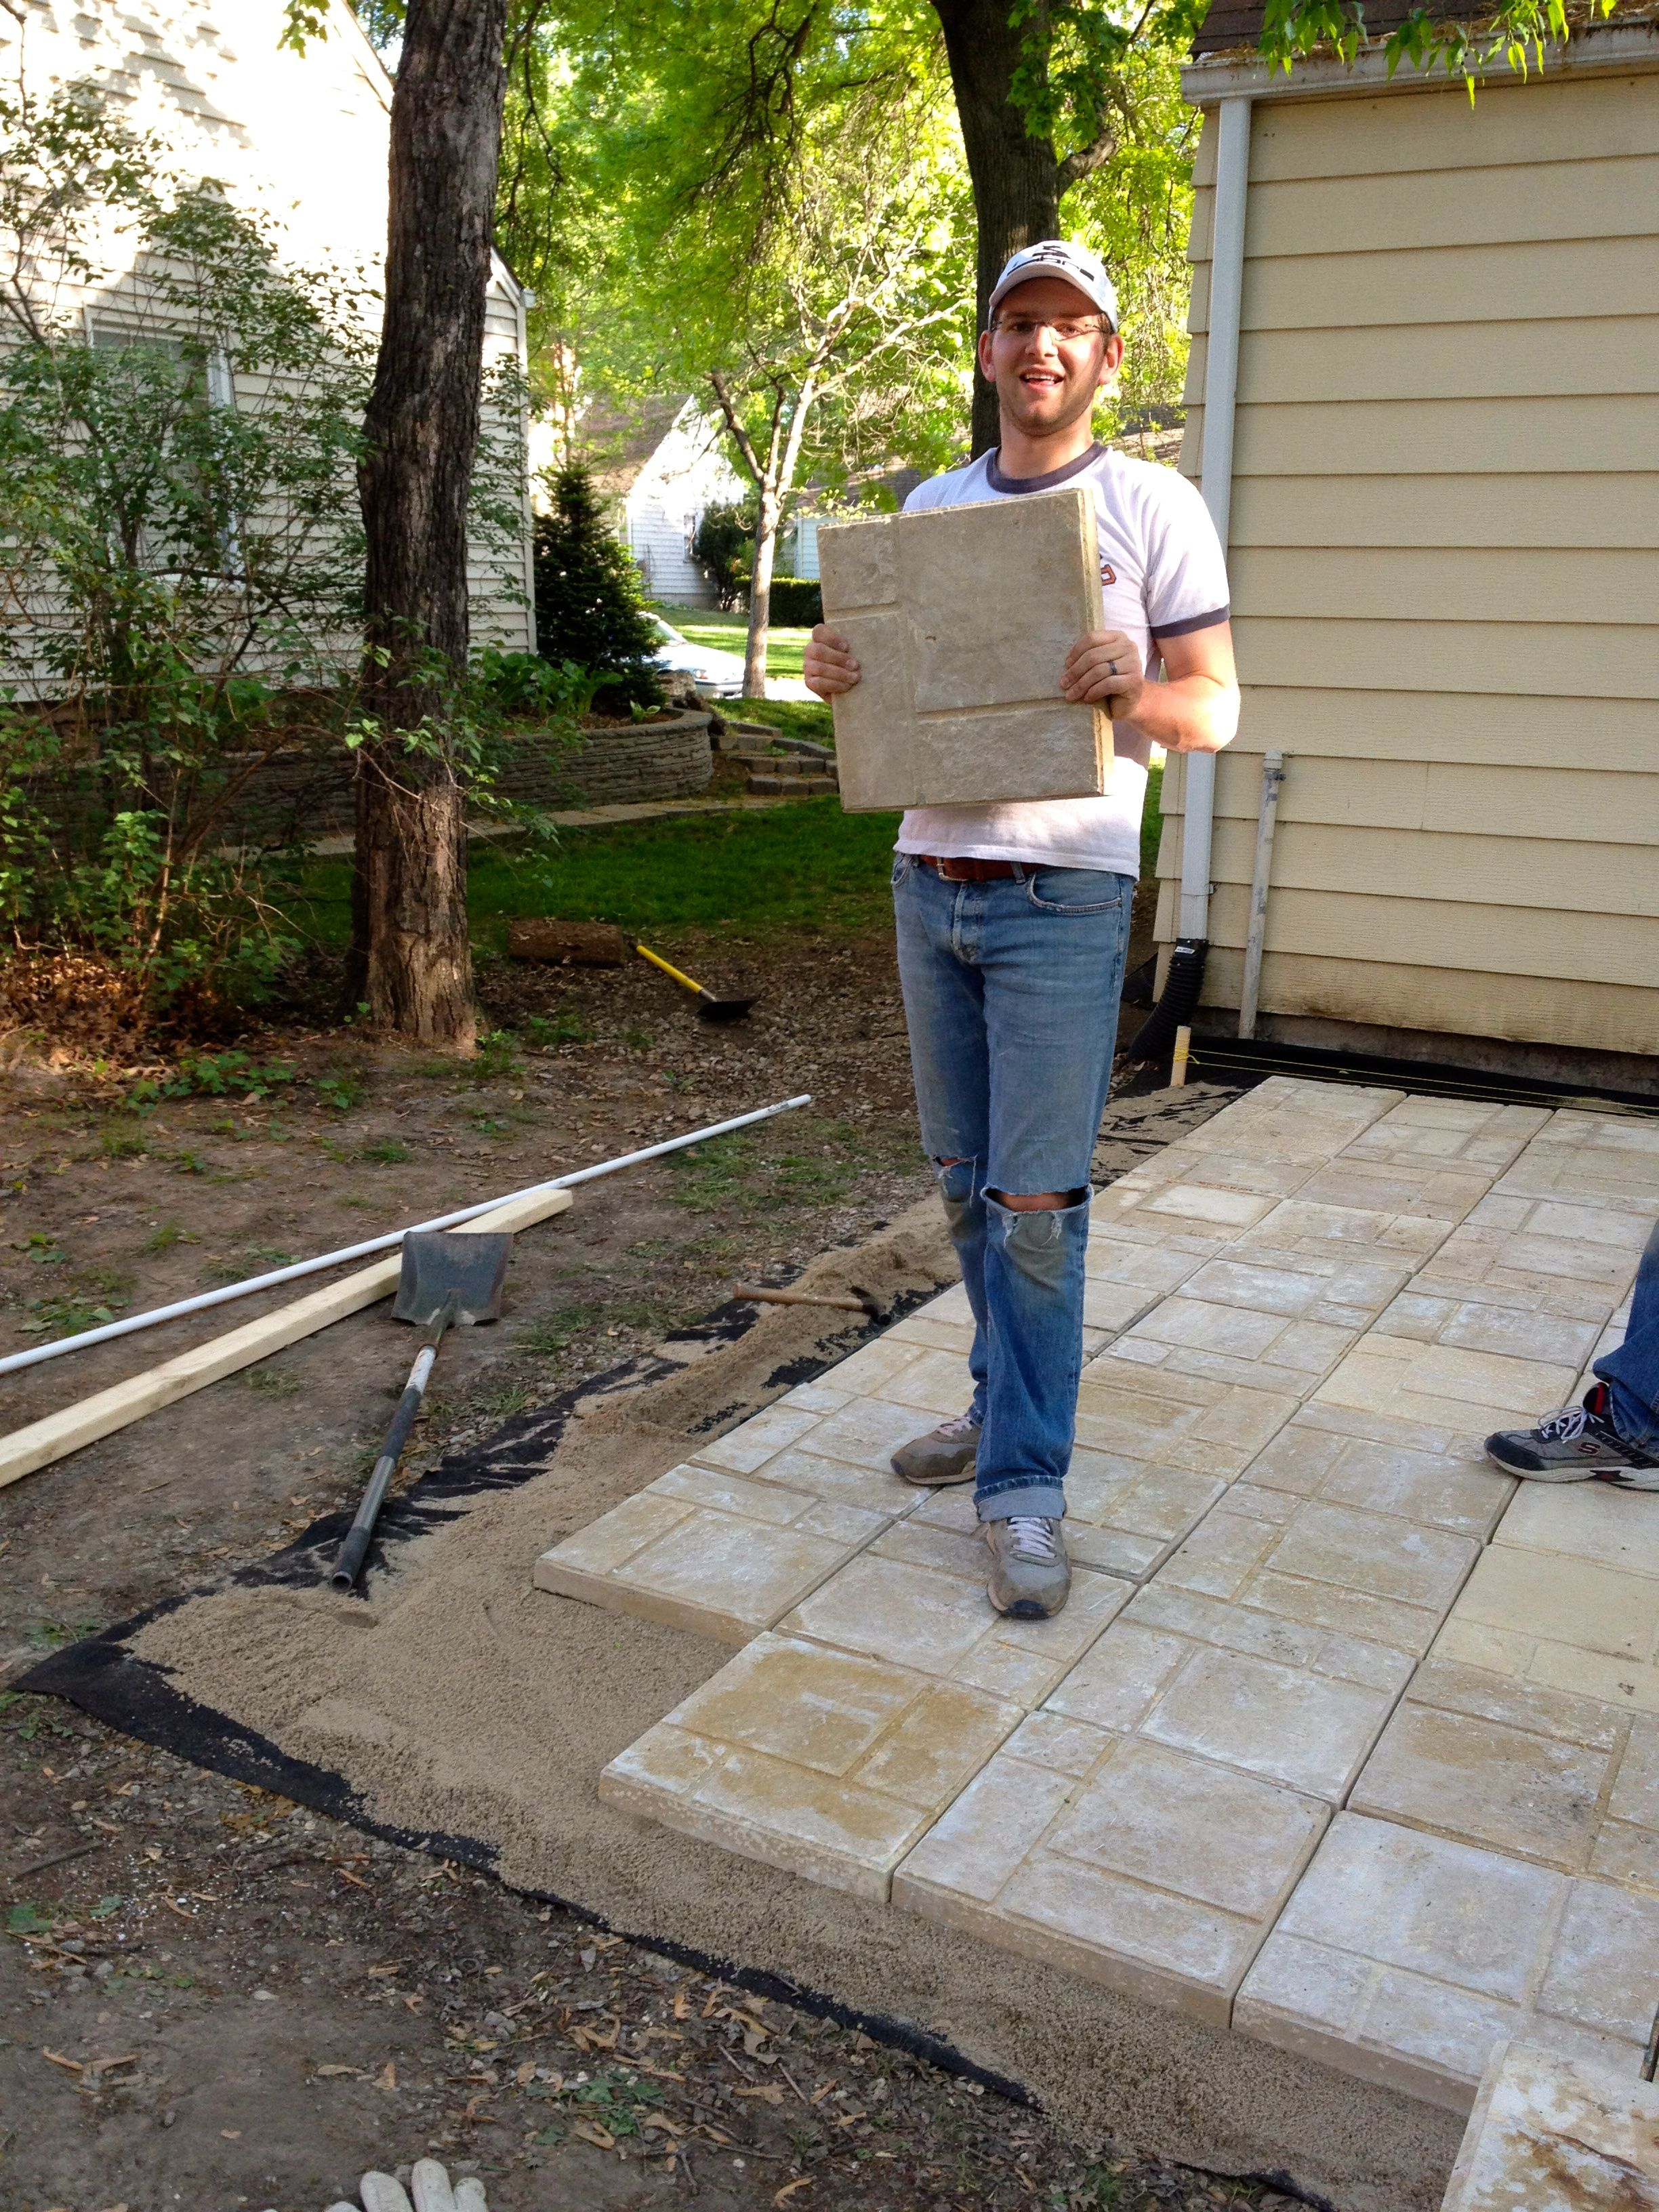 Bring On The Yardwork  Part 1, Installing A Paver Patio